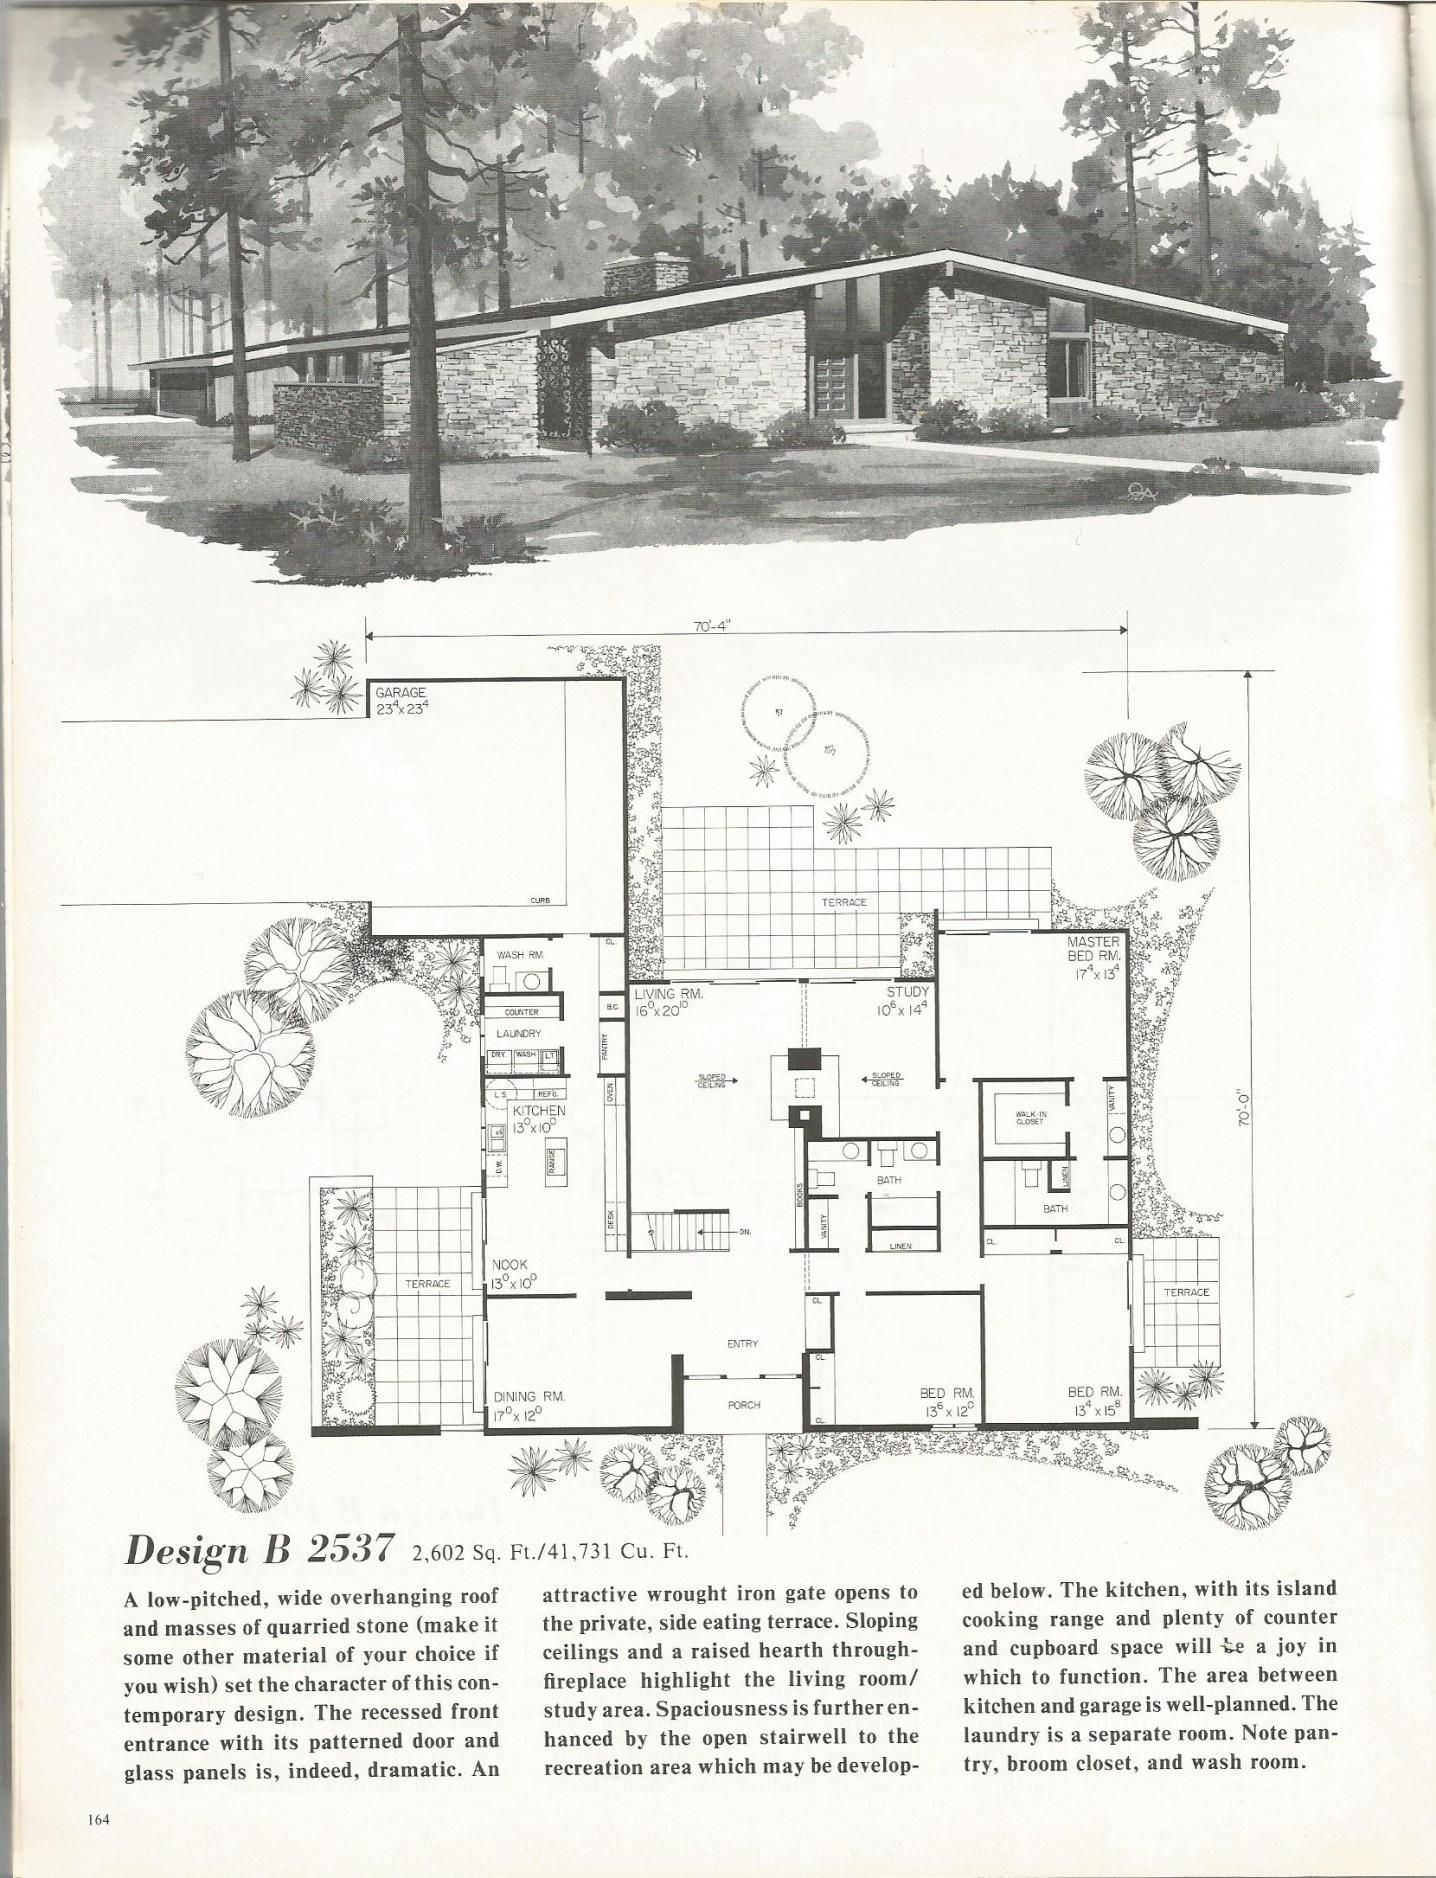 Vintage House Plans 2537 Mid Century Modern House Plans Modern House Plans Modern Floor Plans